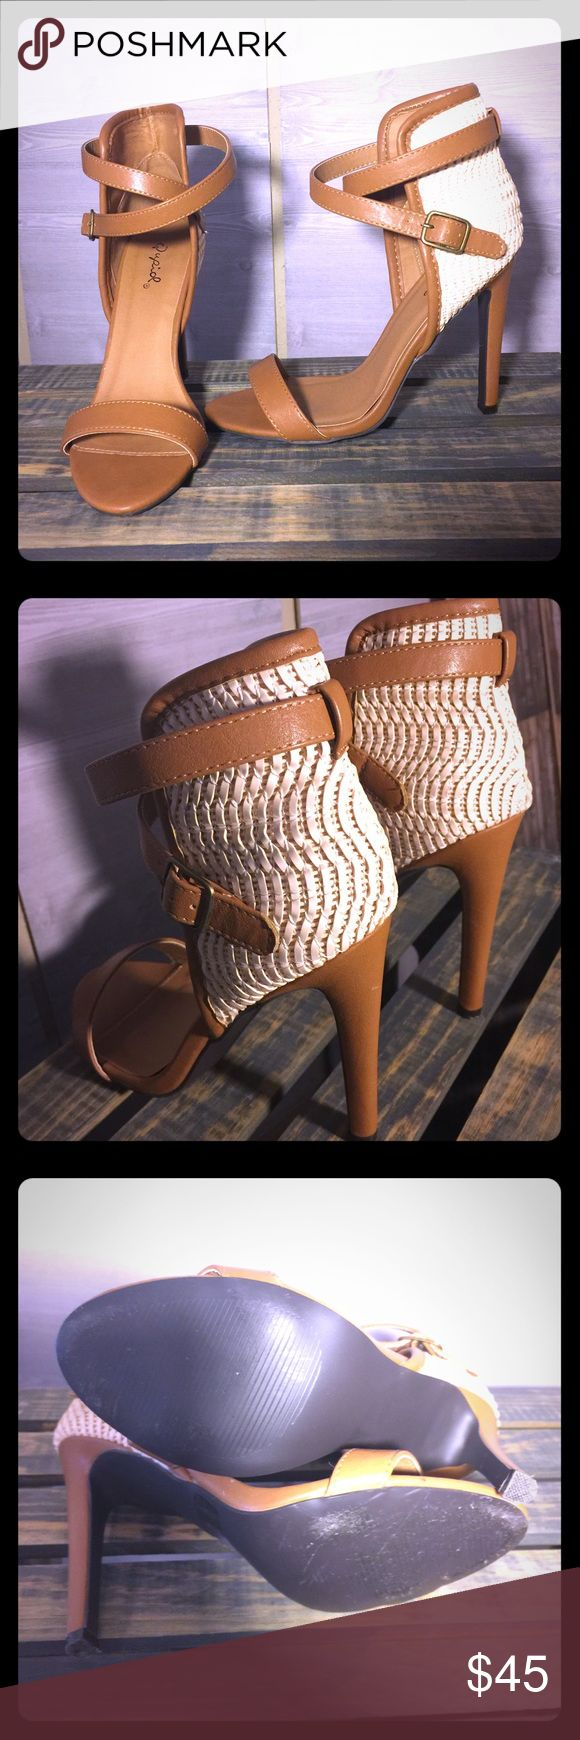 Qupid Heels Beautiful camel and cream 4.5 high heel sandal, used one time. Has a little mark on the back left heel, see photo #2. I will not accept low ball offers on this item.  Pair with a sun dress or a pair of boyfriend jeans! Qupid Shoes Heels